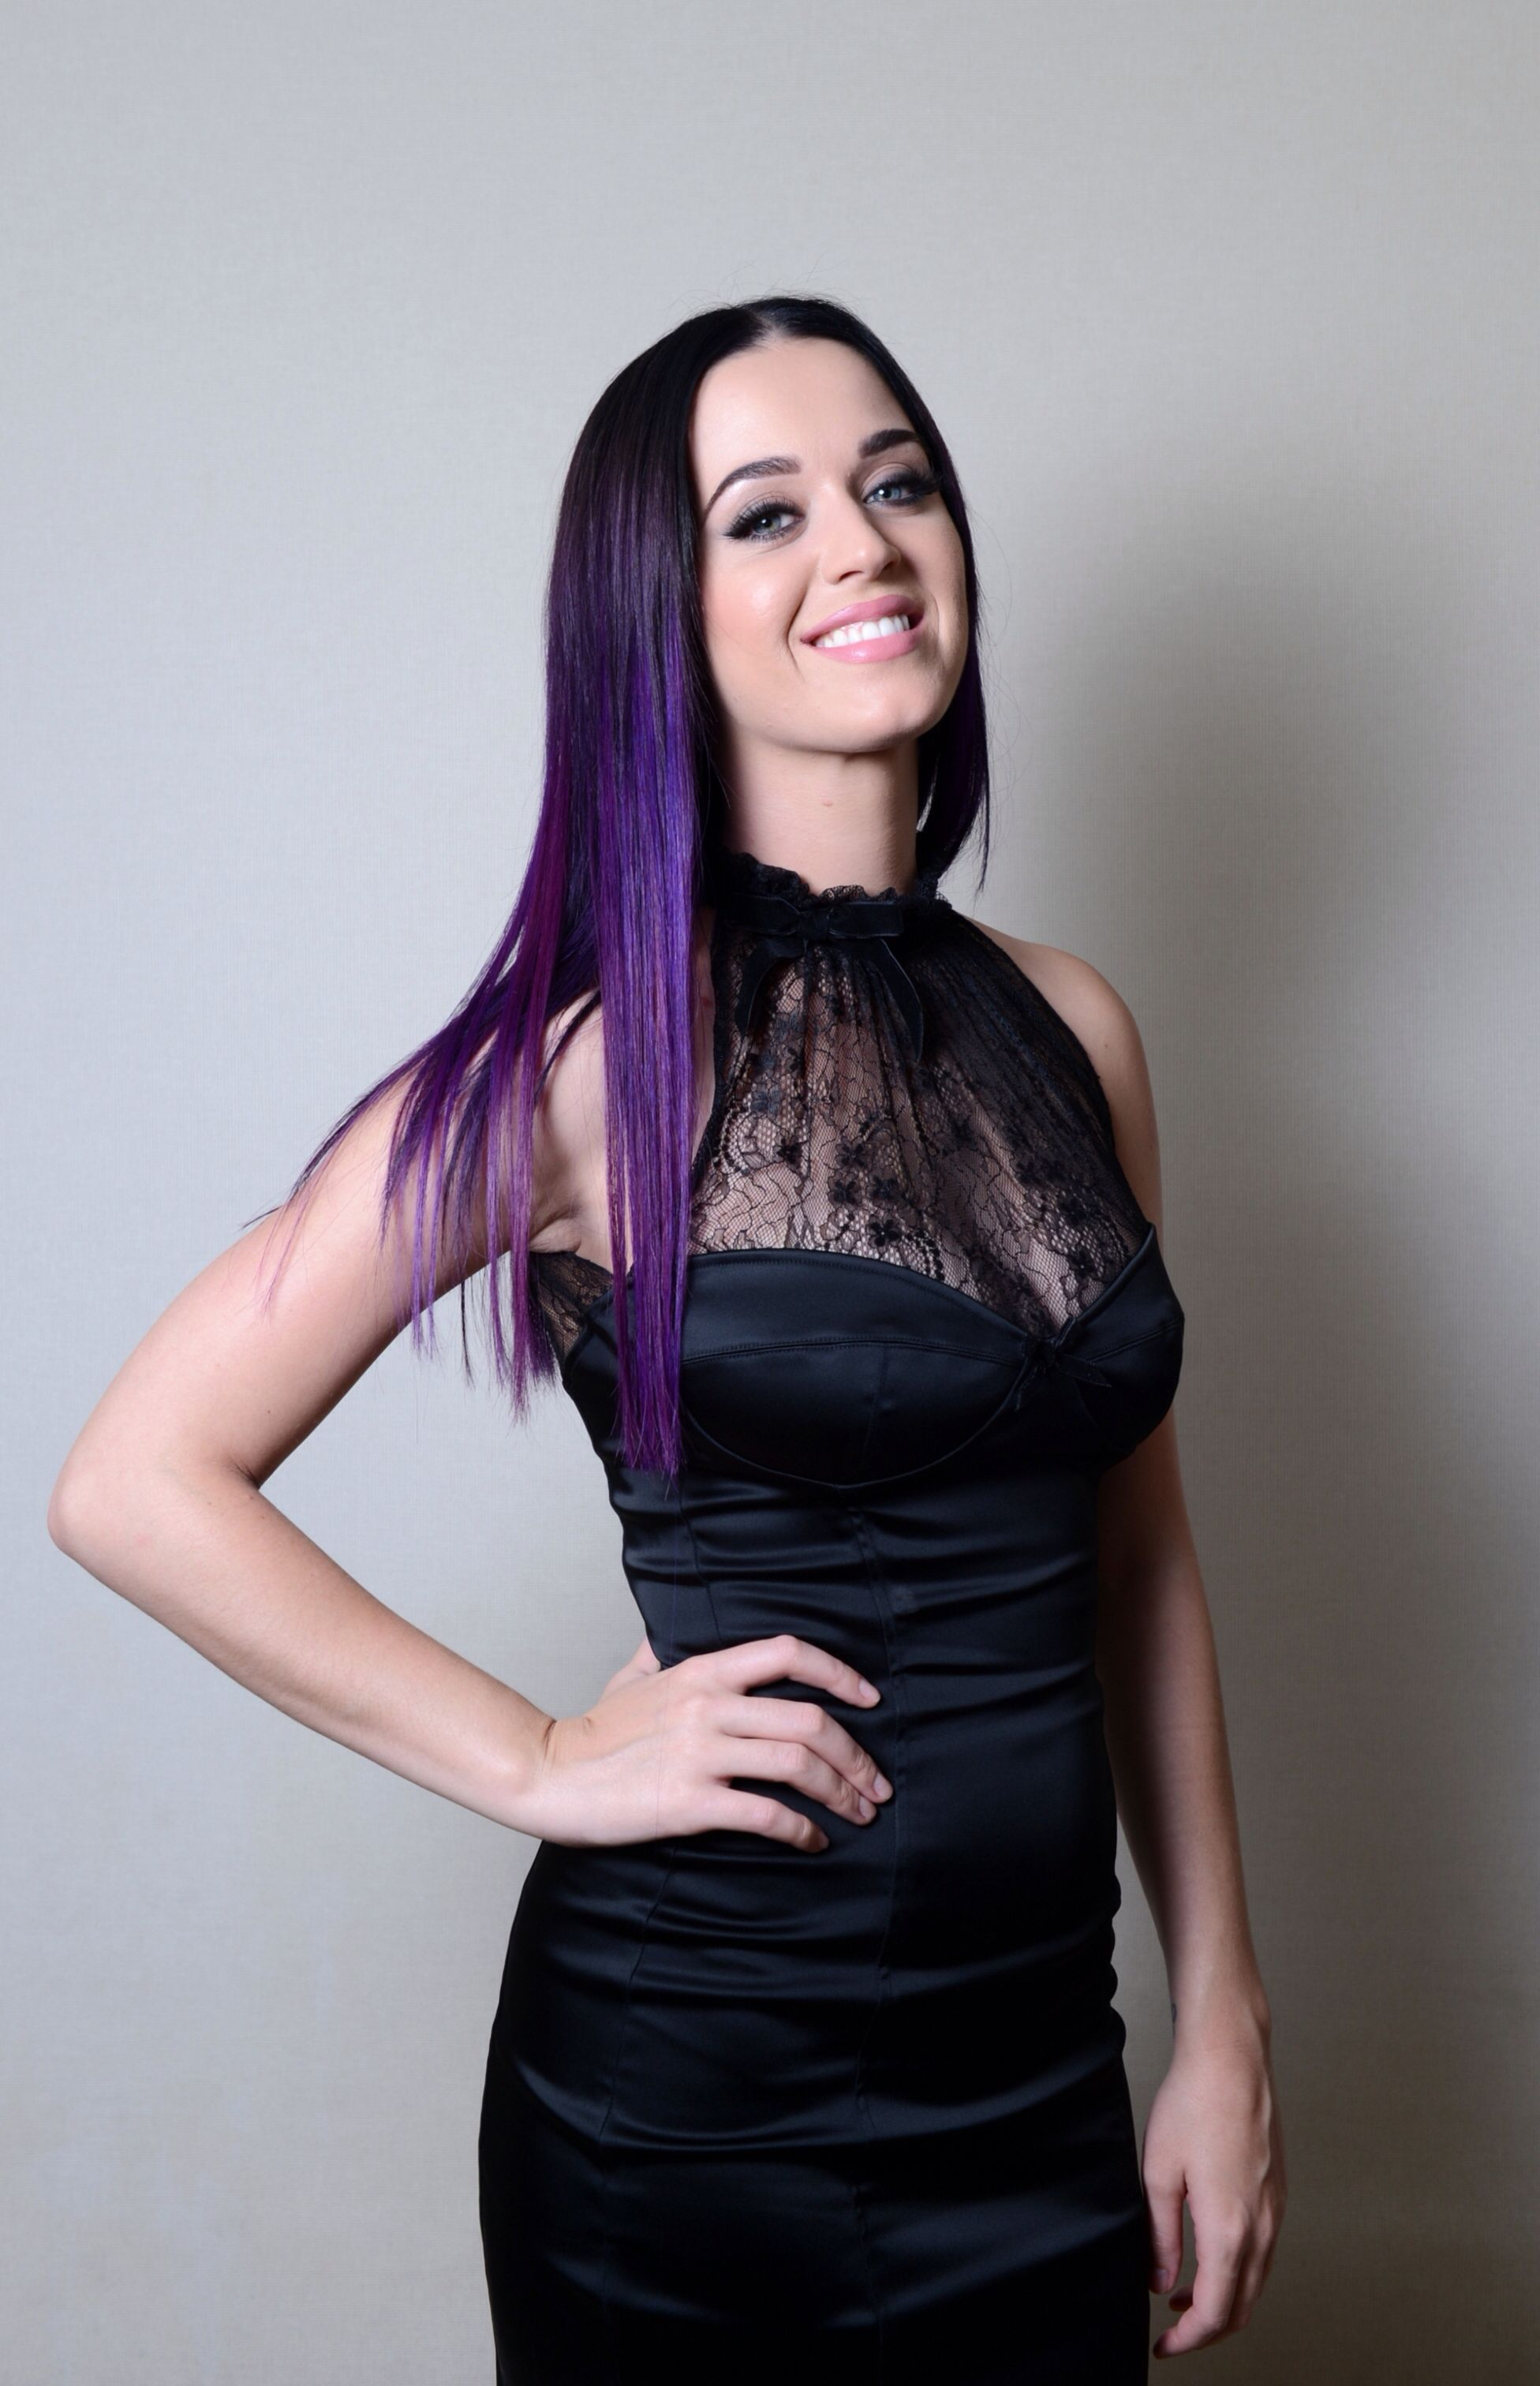 Black dress hairstyle - Love The Black Dress And Purple Hair Combo